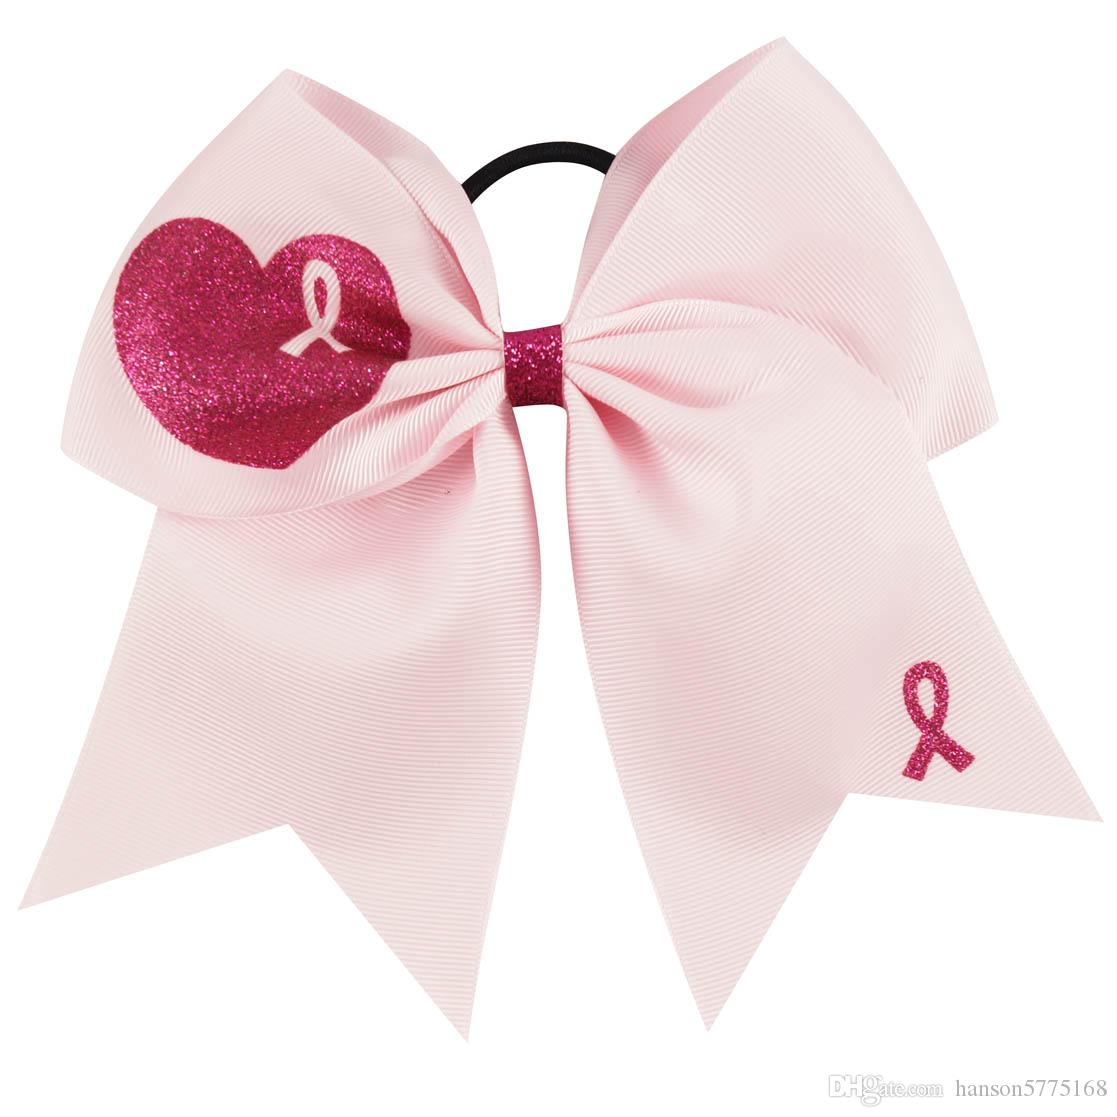 7.5 inch Boutique Breast Cancer Awareness Ribbon Cheer Bows with Ponytail Hair Holders for Cheerleading Girls Hair Accessories